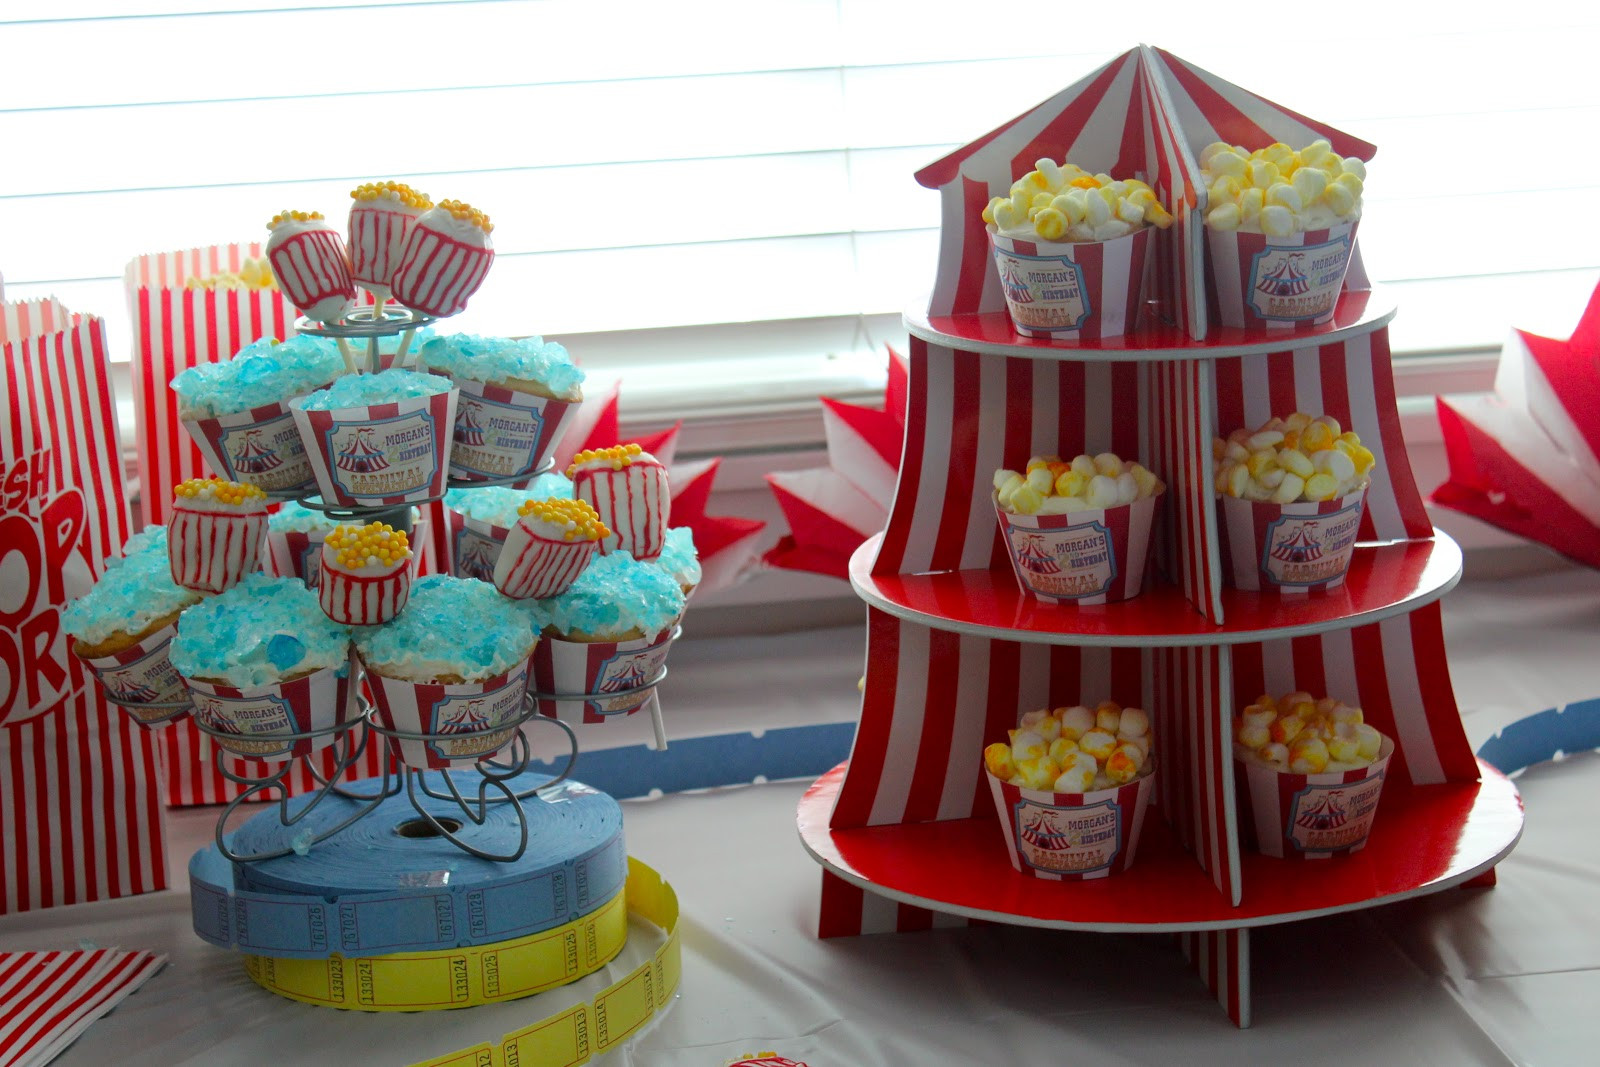 Best ideas about Carnival Birthday Party Ideas . Save or Pin Taylor Joelle Designs Carnival Birthday Party Now.